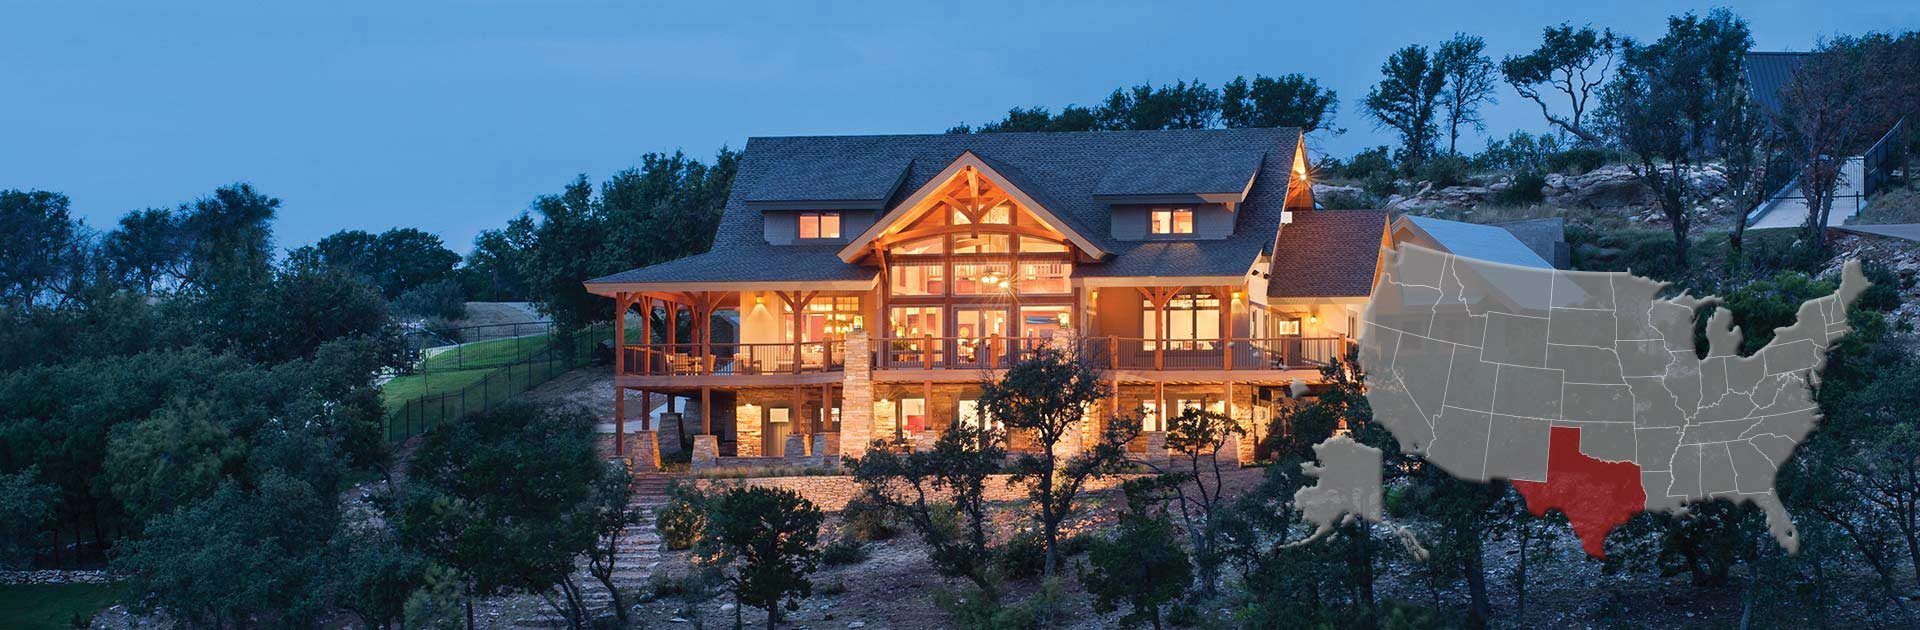 Texas Log & Timber Homes